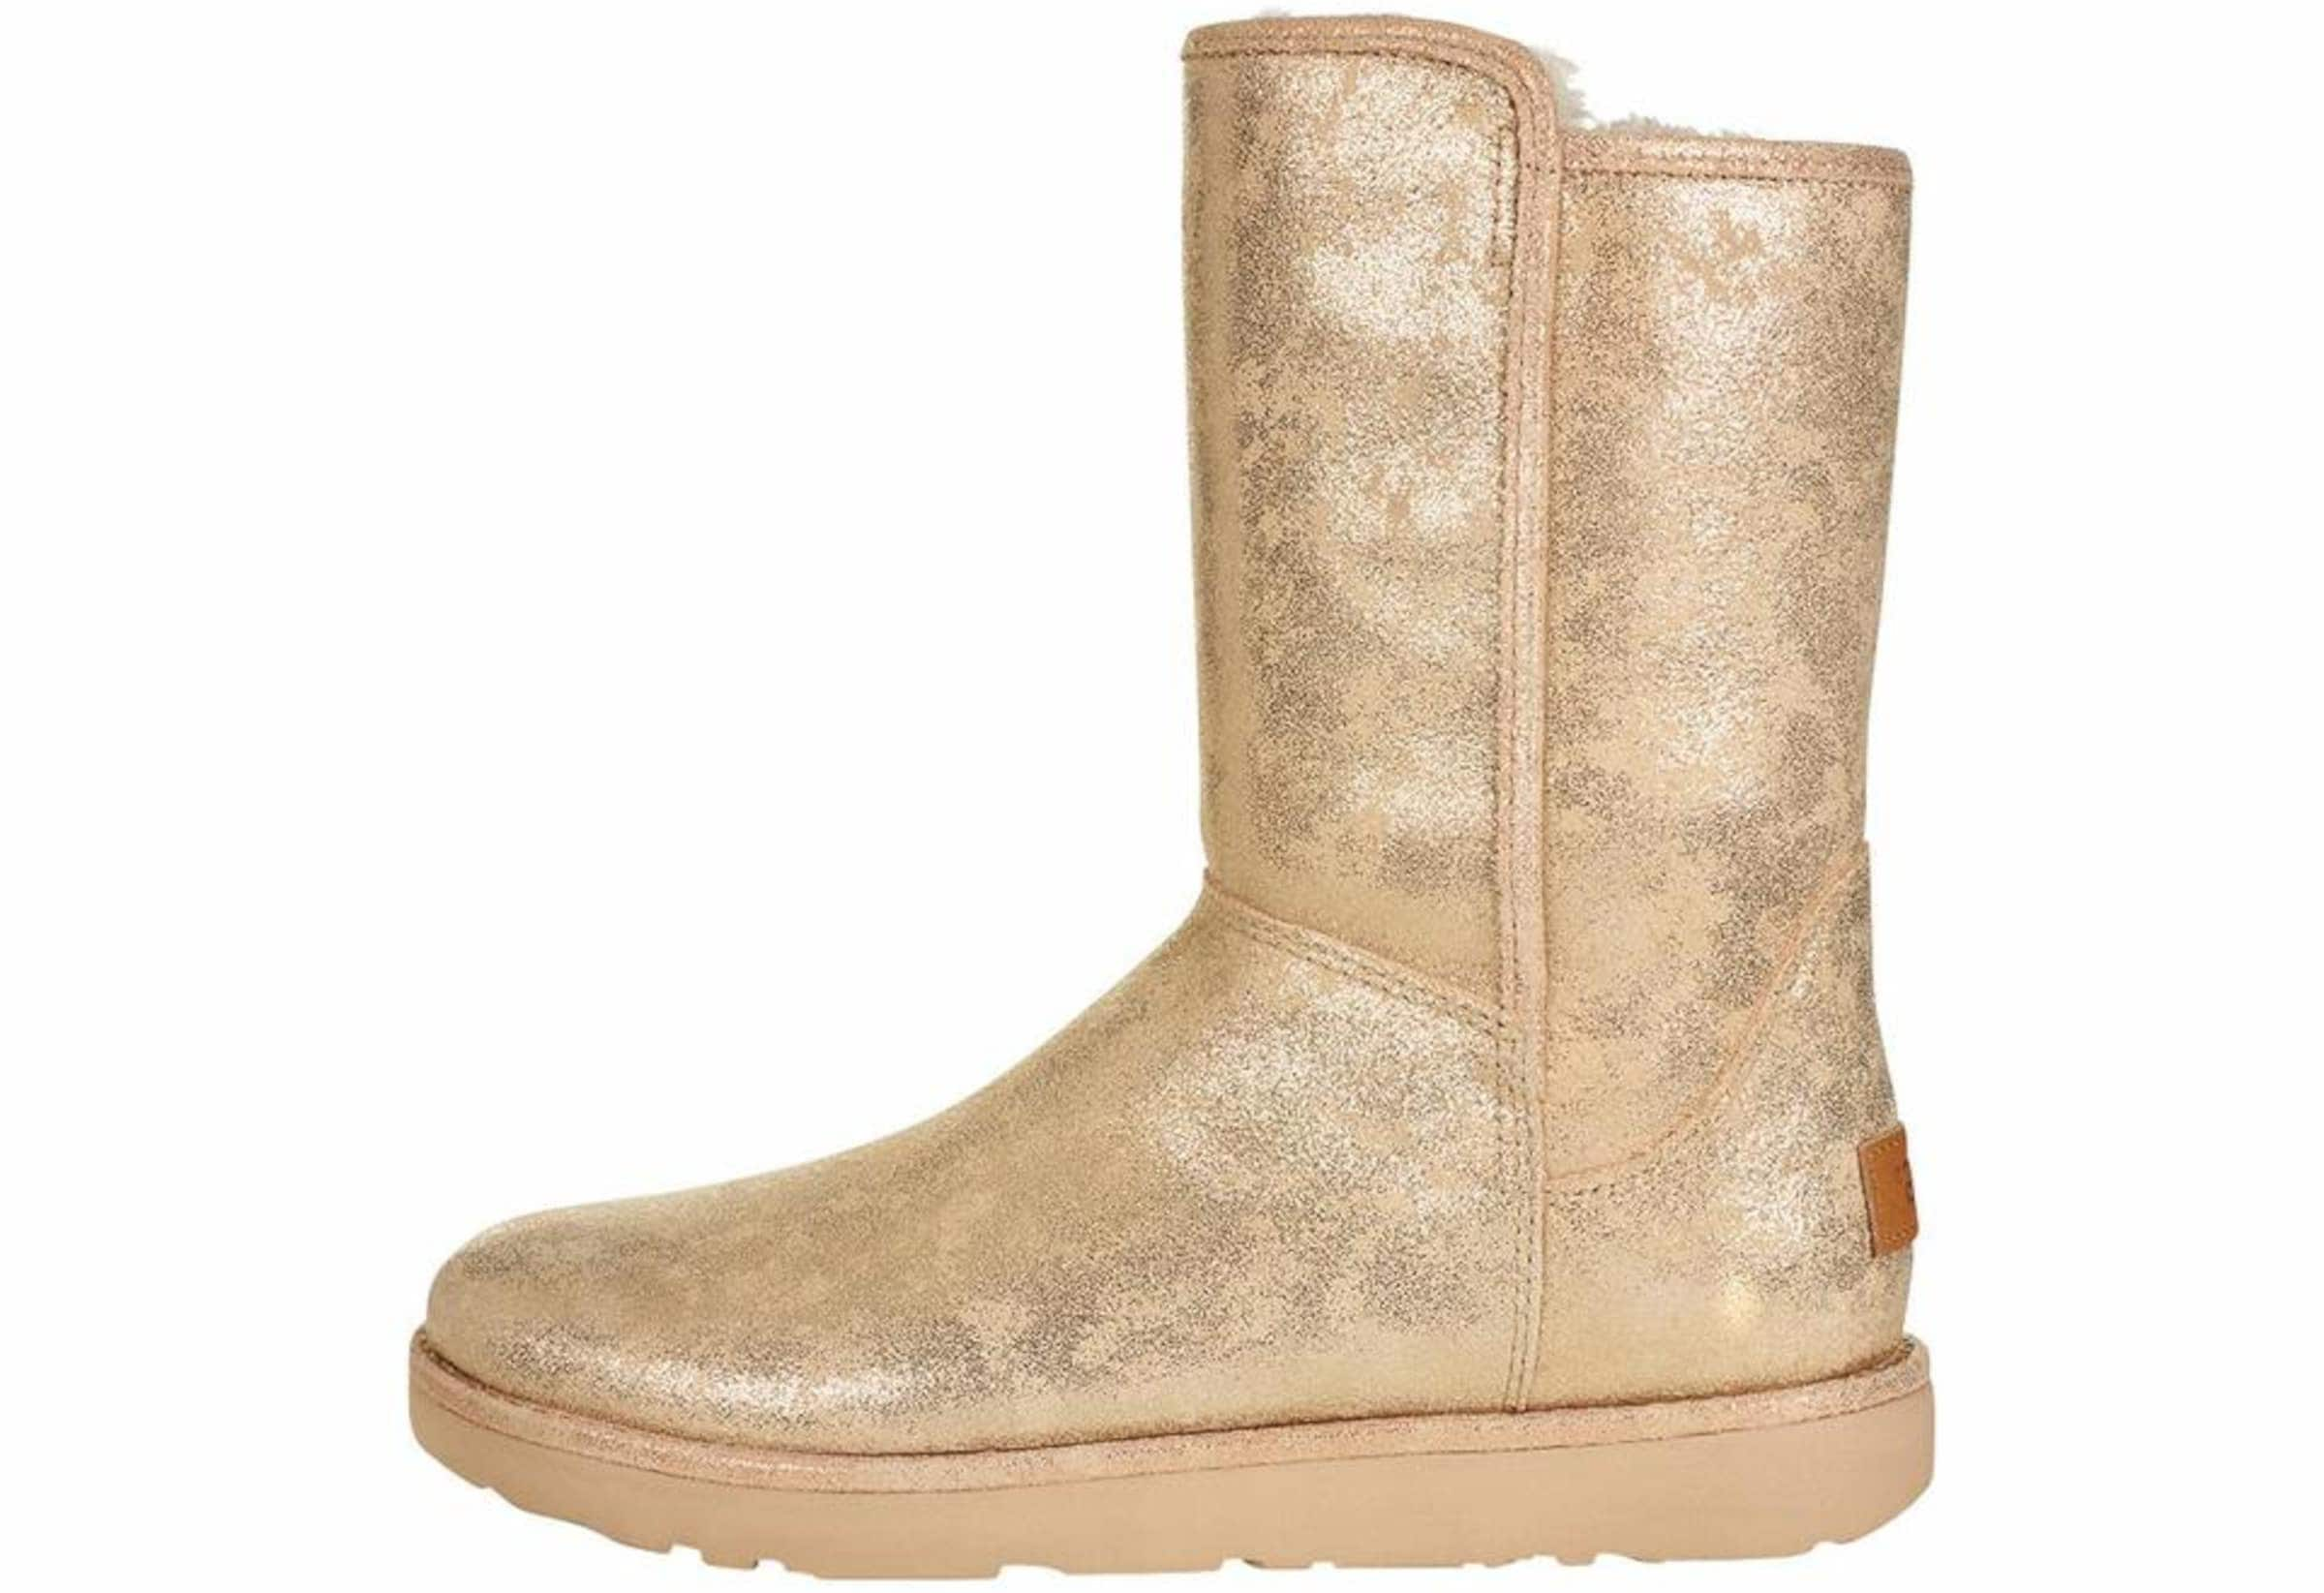 S' Boots In Gold Short2 'abree Ugg PkTOuZiX